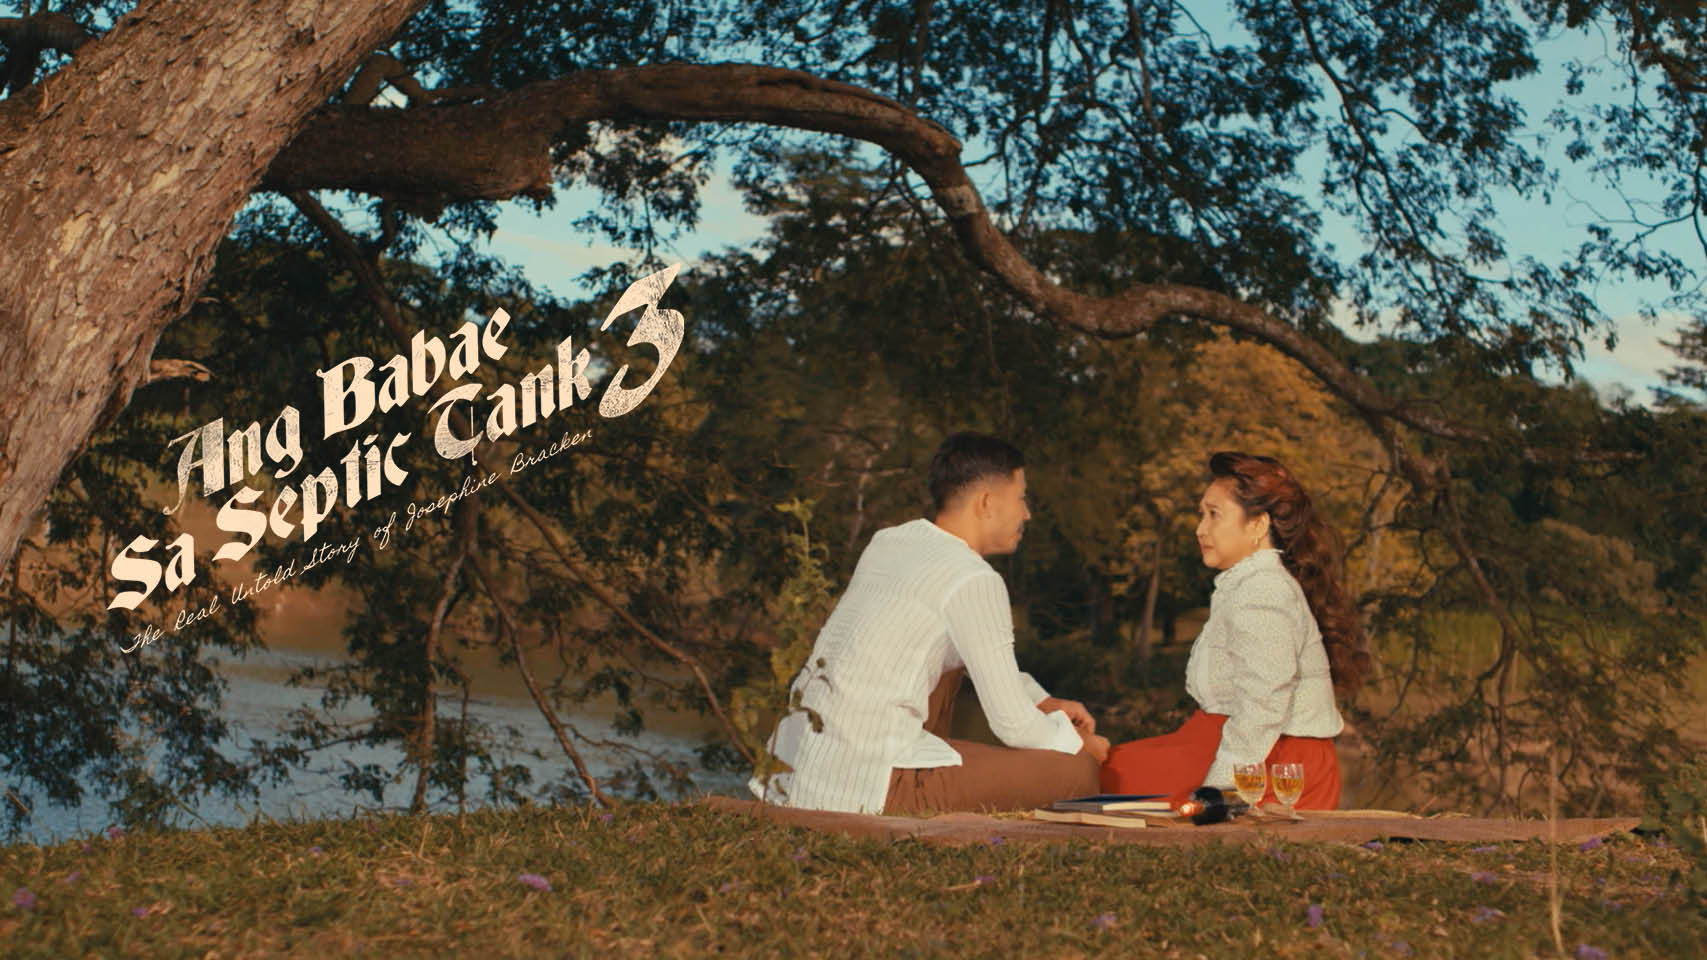 Eugene Domingo and Tony Labrusca in Ang babae sa septic tank 3: The Real Untold Story of Josephine Bracken (2019)